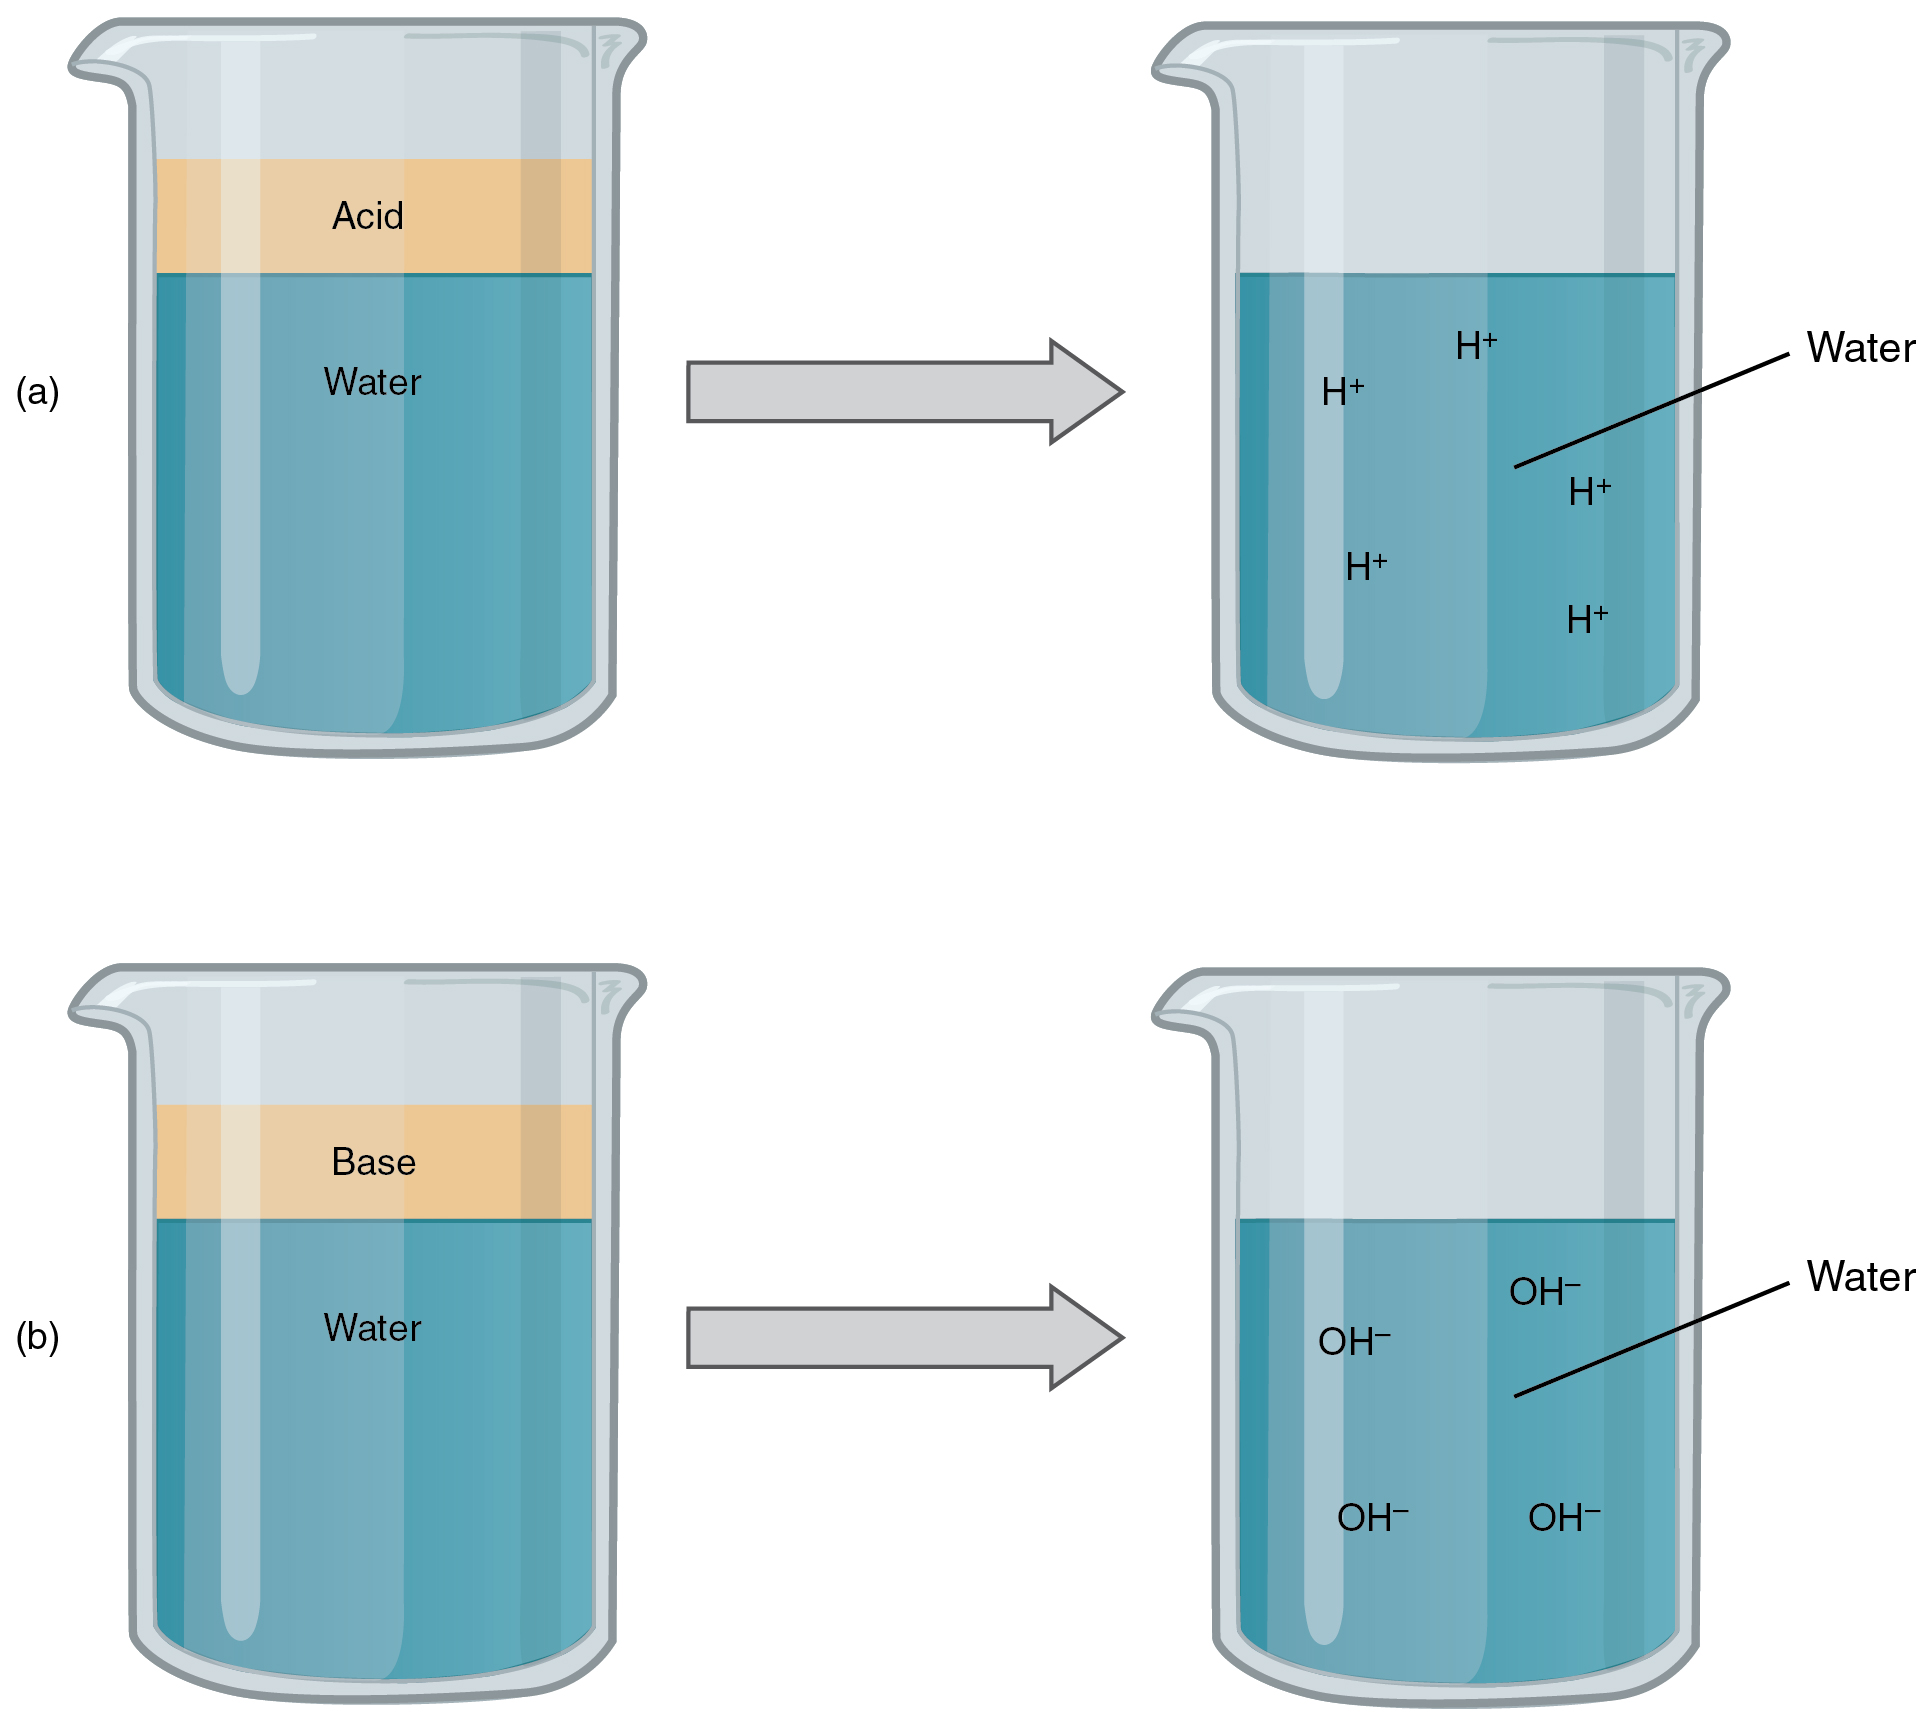 This Figure Shows Four Beakers Containing Different Liquids